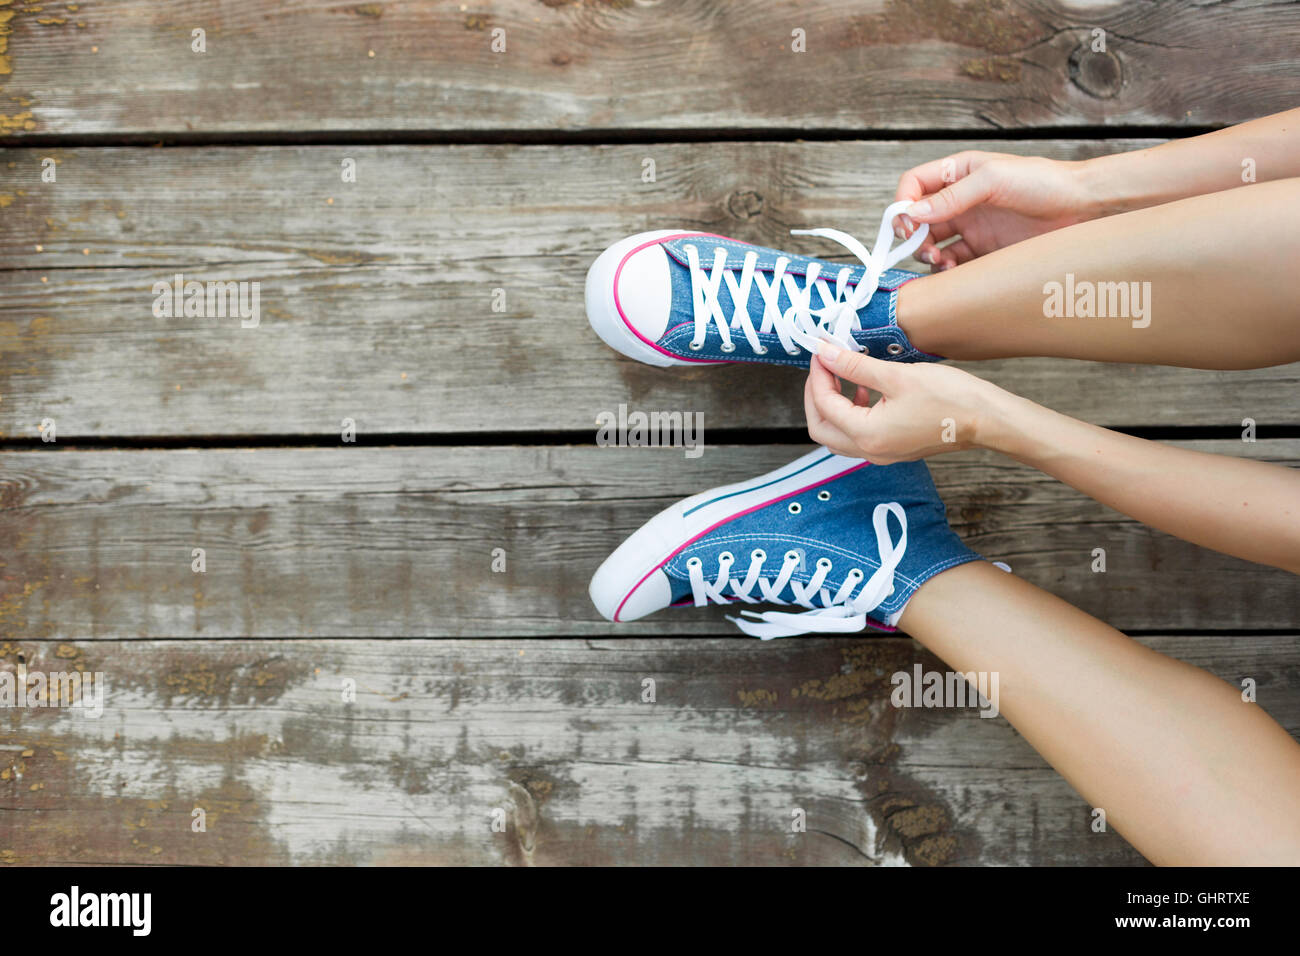 Jeune femme attachant lacets de son jeans sneakers assis sur le plancher en bois Photo Stock